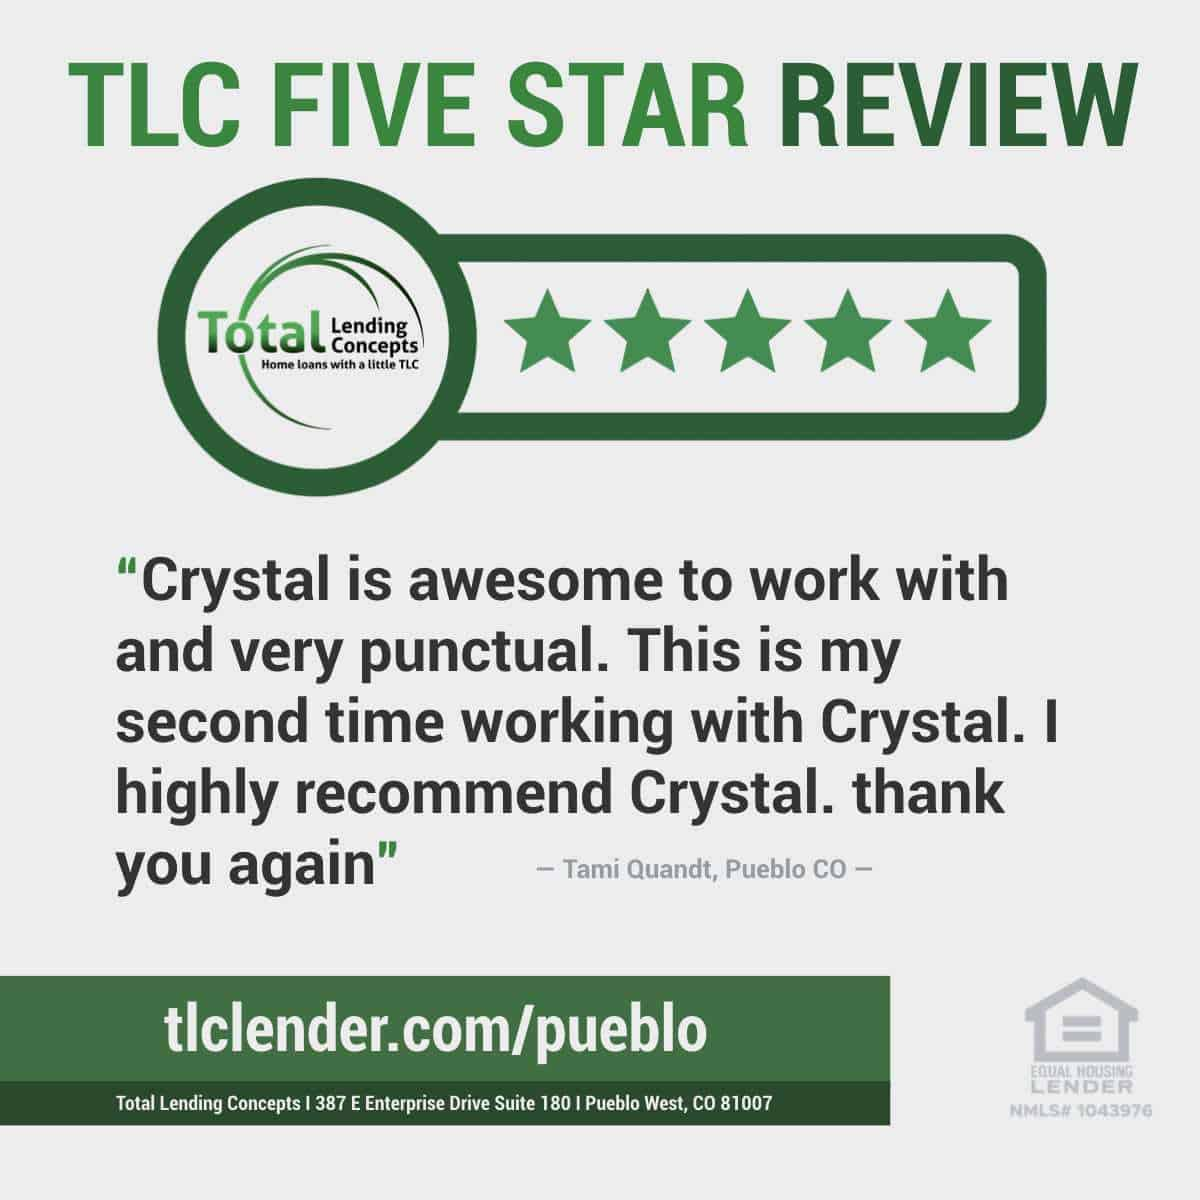 Total Lending Concepts Five Star Review Crystal in Peublo West Colorado for Tami Quandt